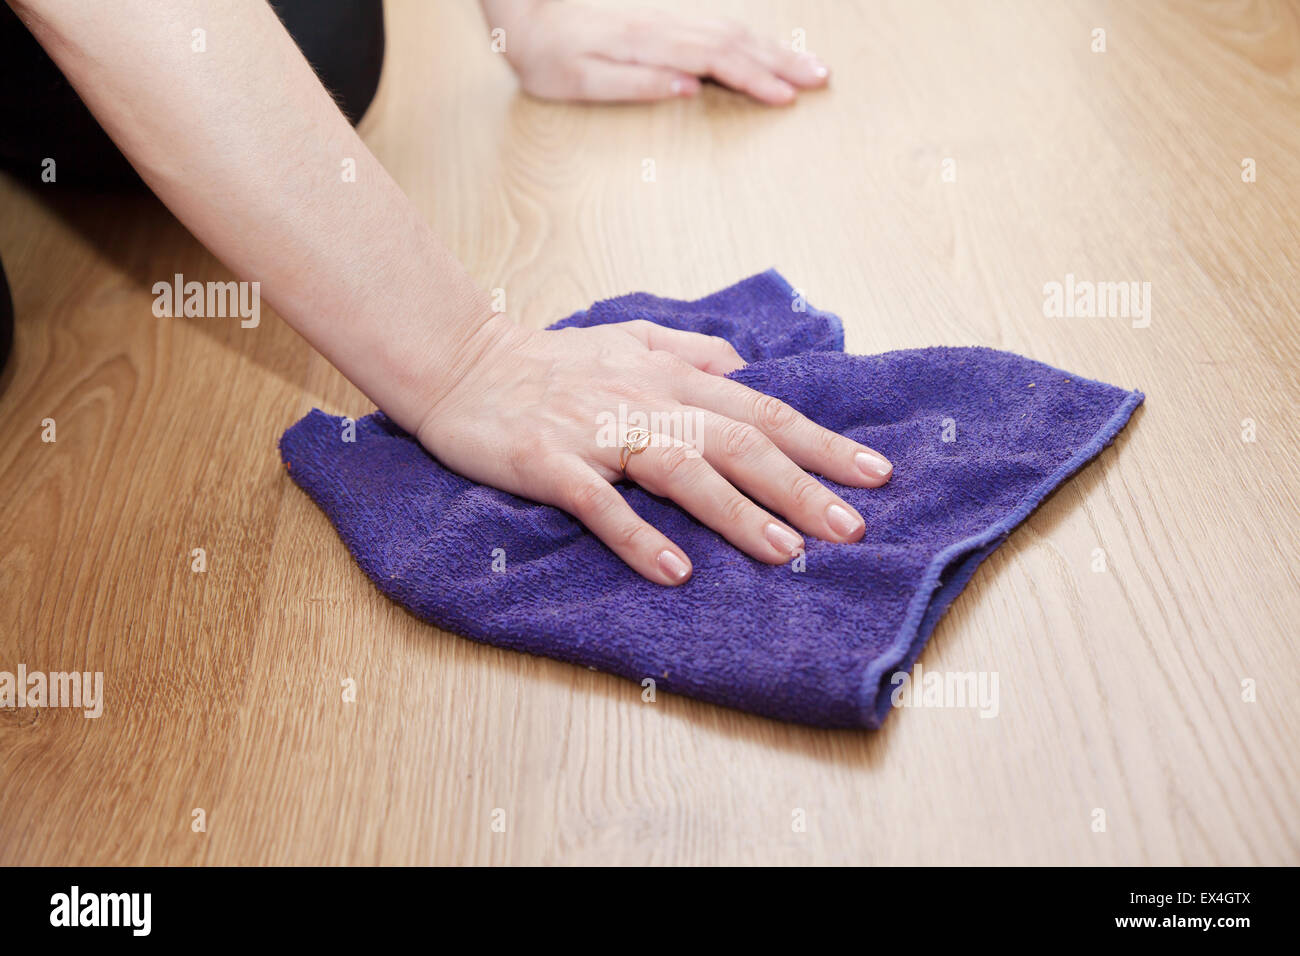 woman's hand cleaning the wooden floor with a blue cloth closeup Stock Photo